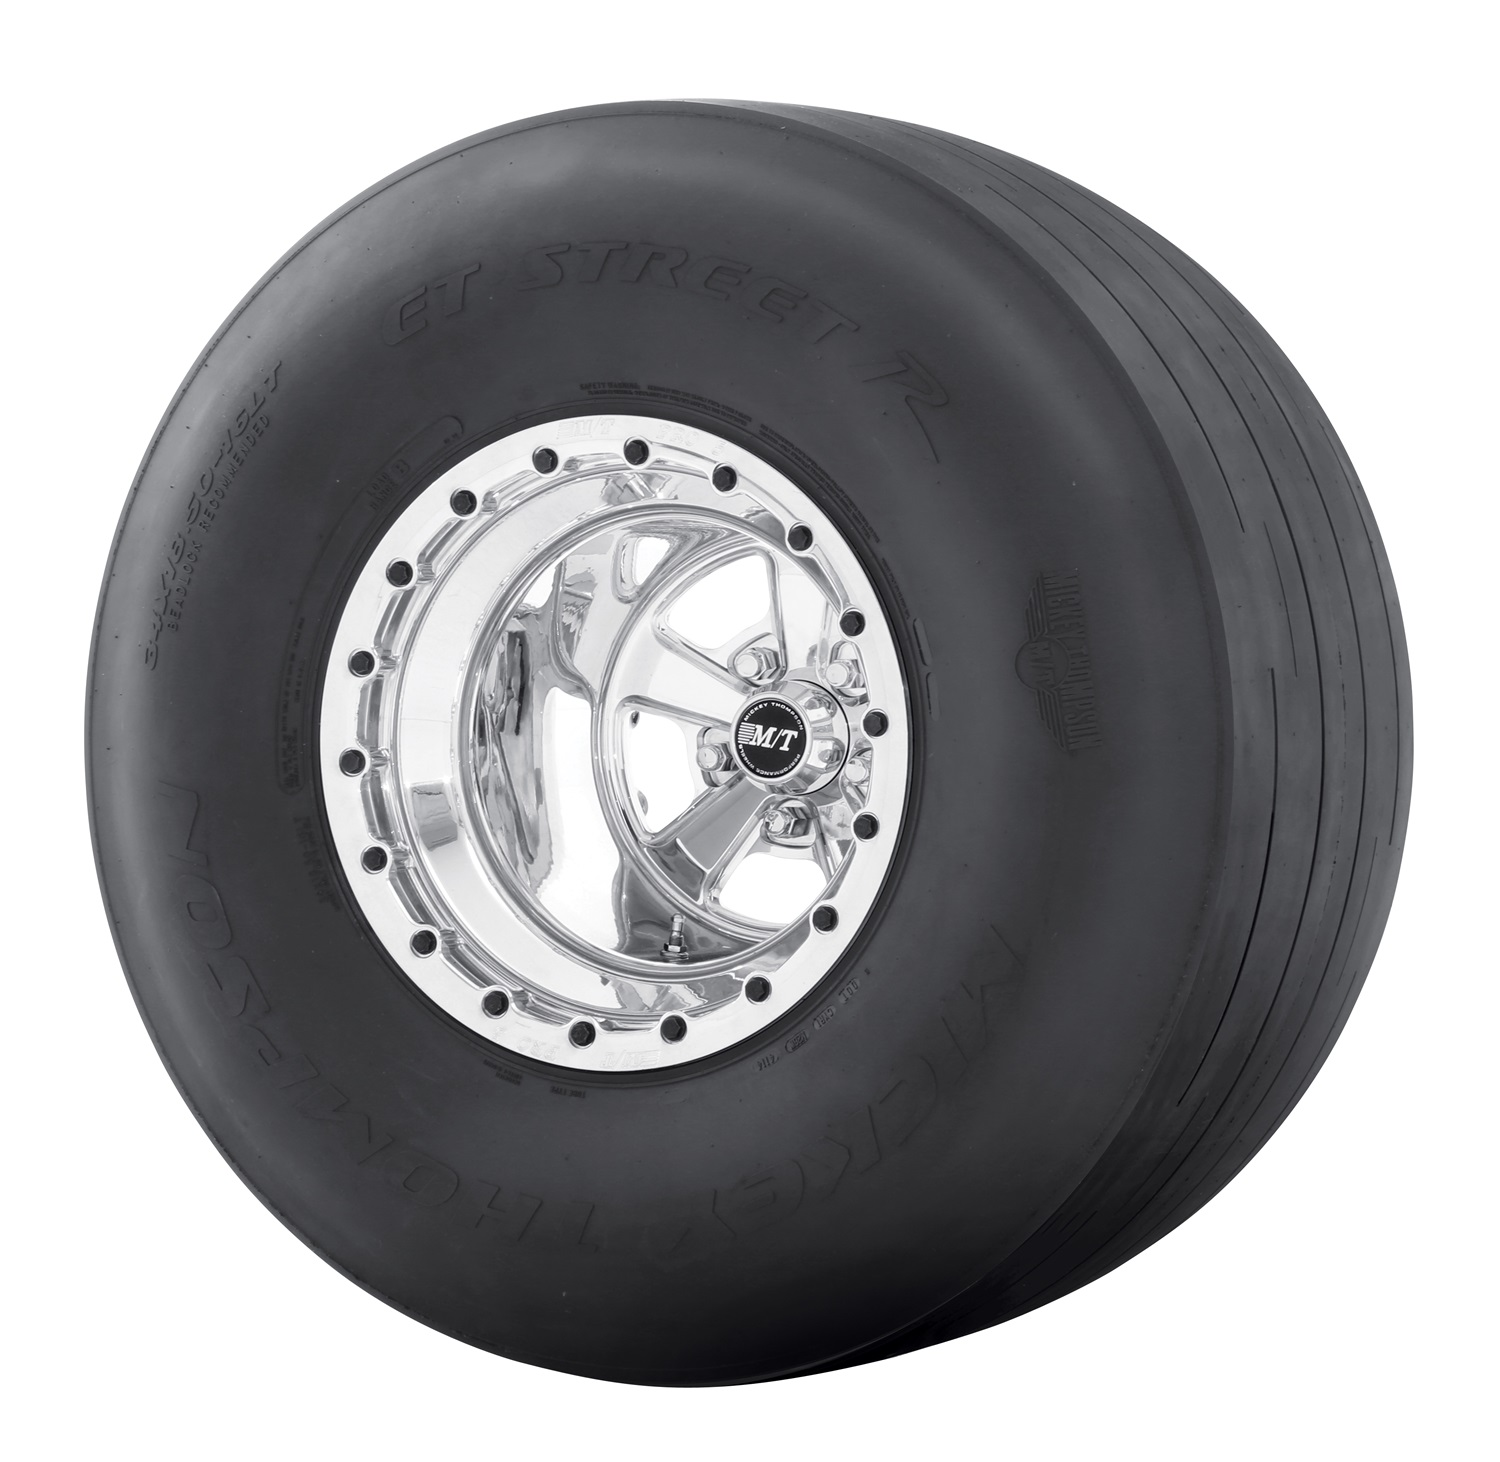 Mickey Thompson 028490 Mickey Thompsonr ET Streetr R Tire